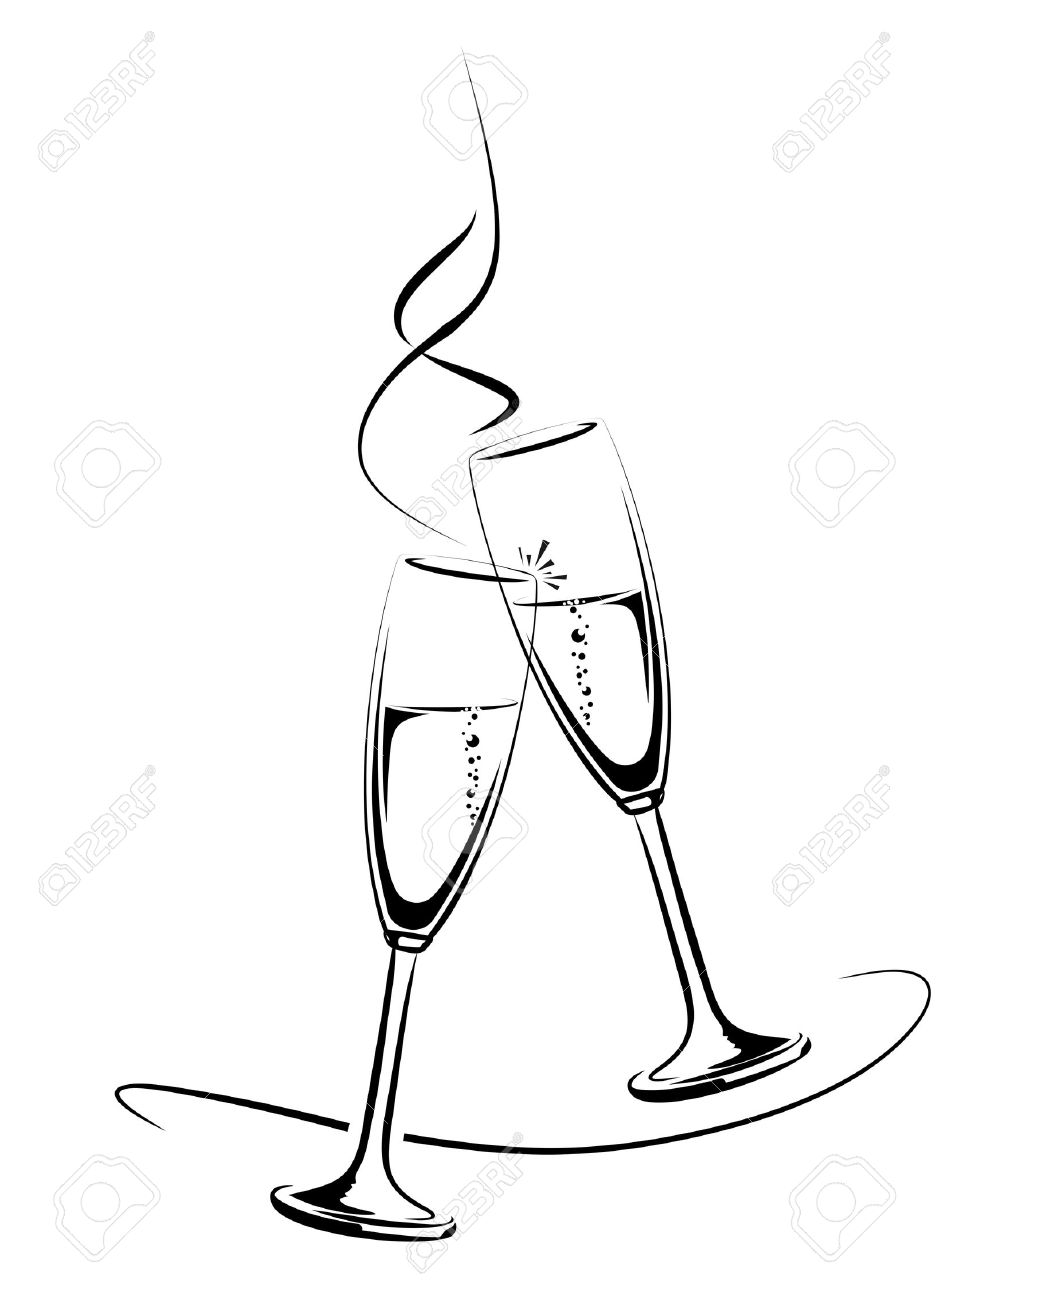 Ch agne clipart 3 748 cheers ch agne stock vector illustration and royalty free